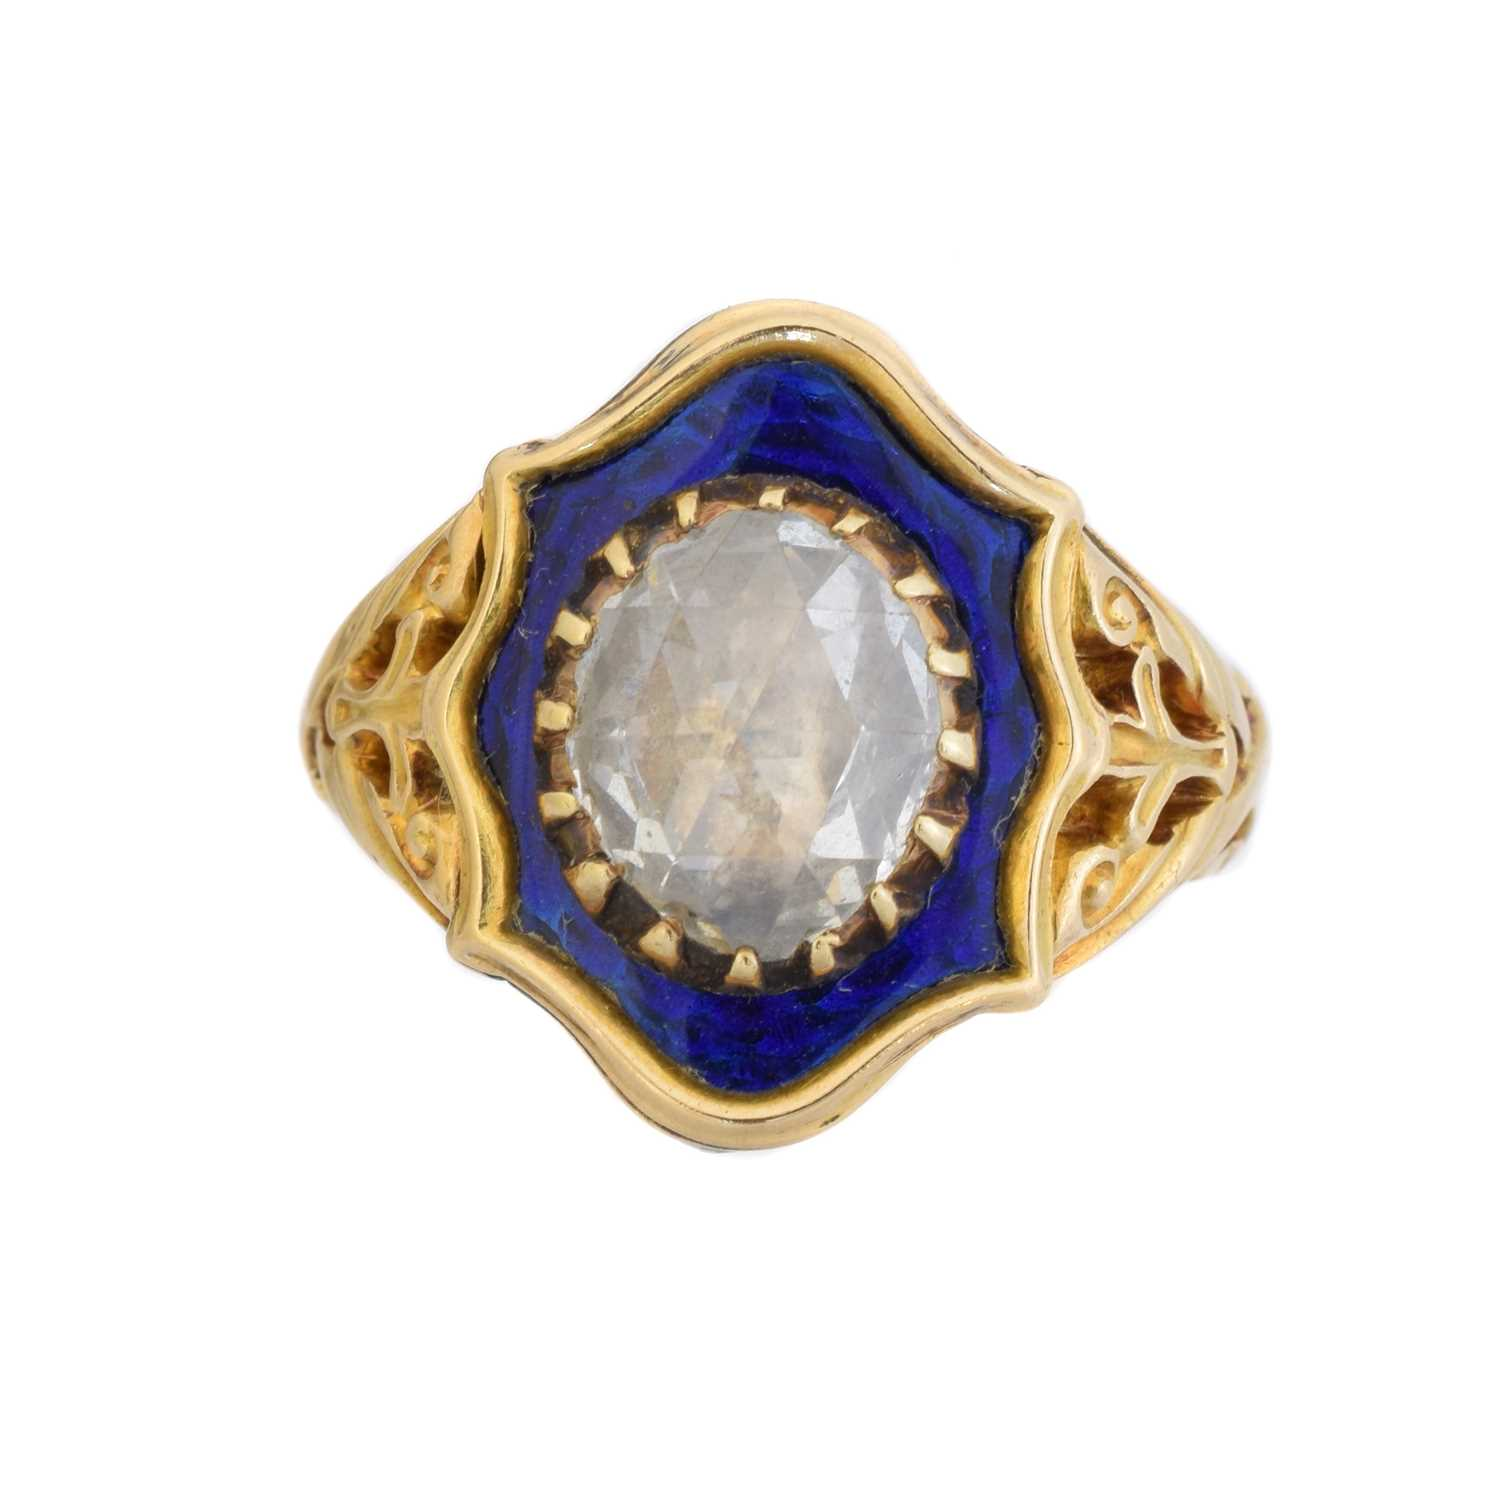 Lot 113 - A fine 17th century rose-cut diamond presented by Charles II